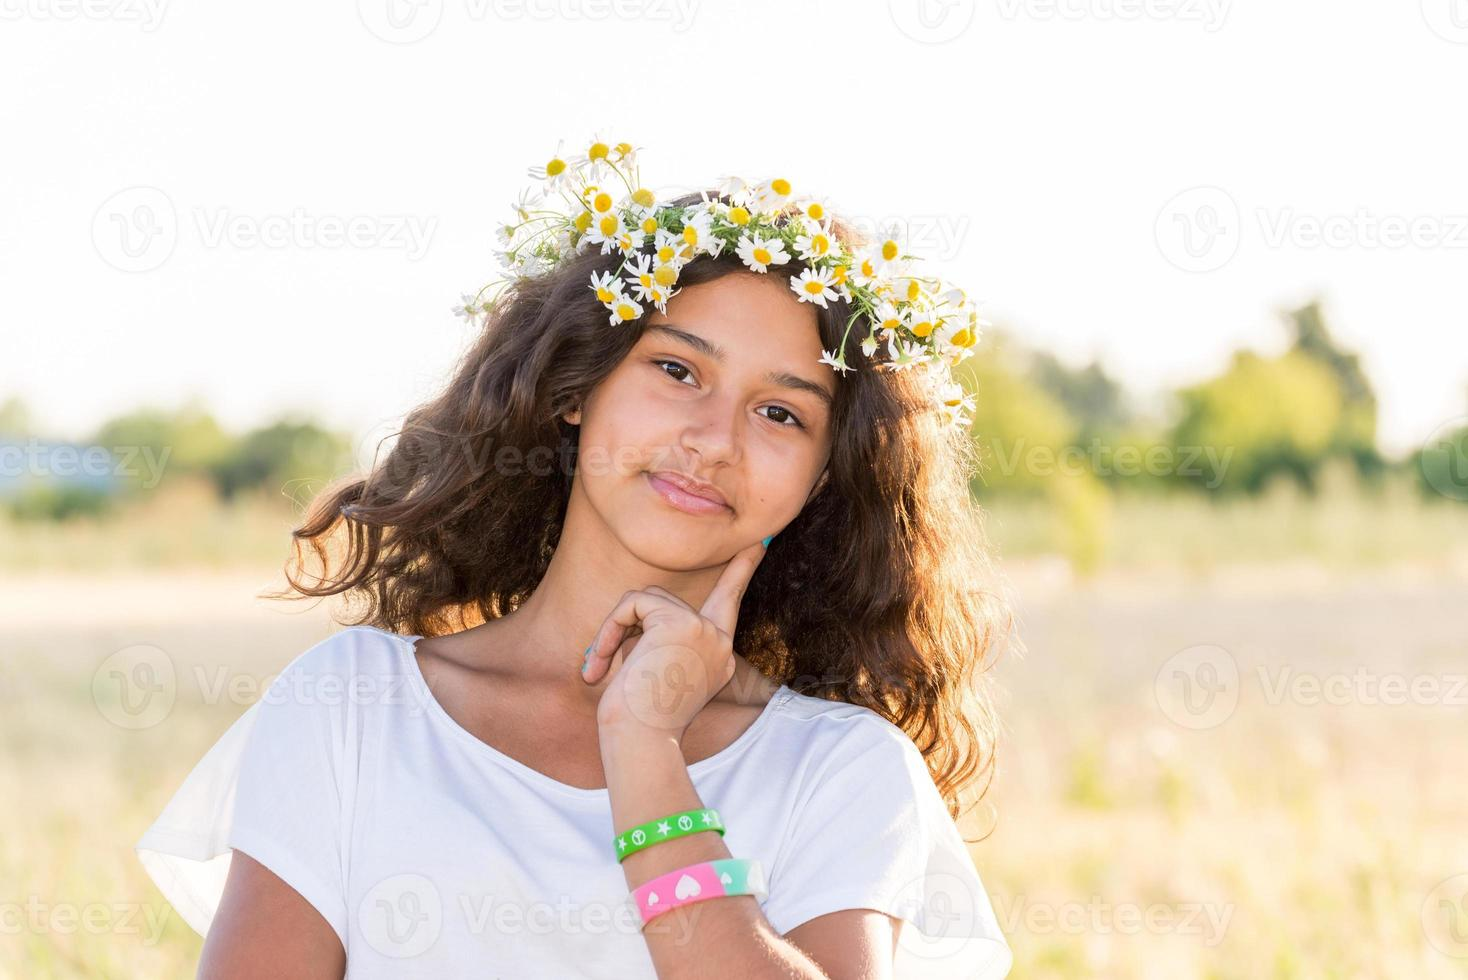 Teen girl with a wreath of daisies in   field photo